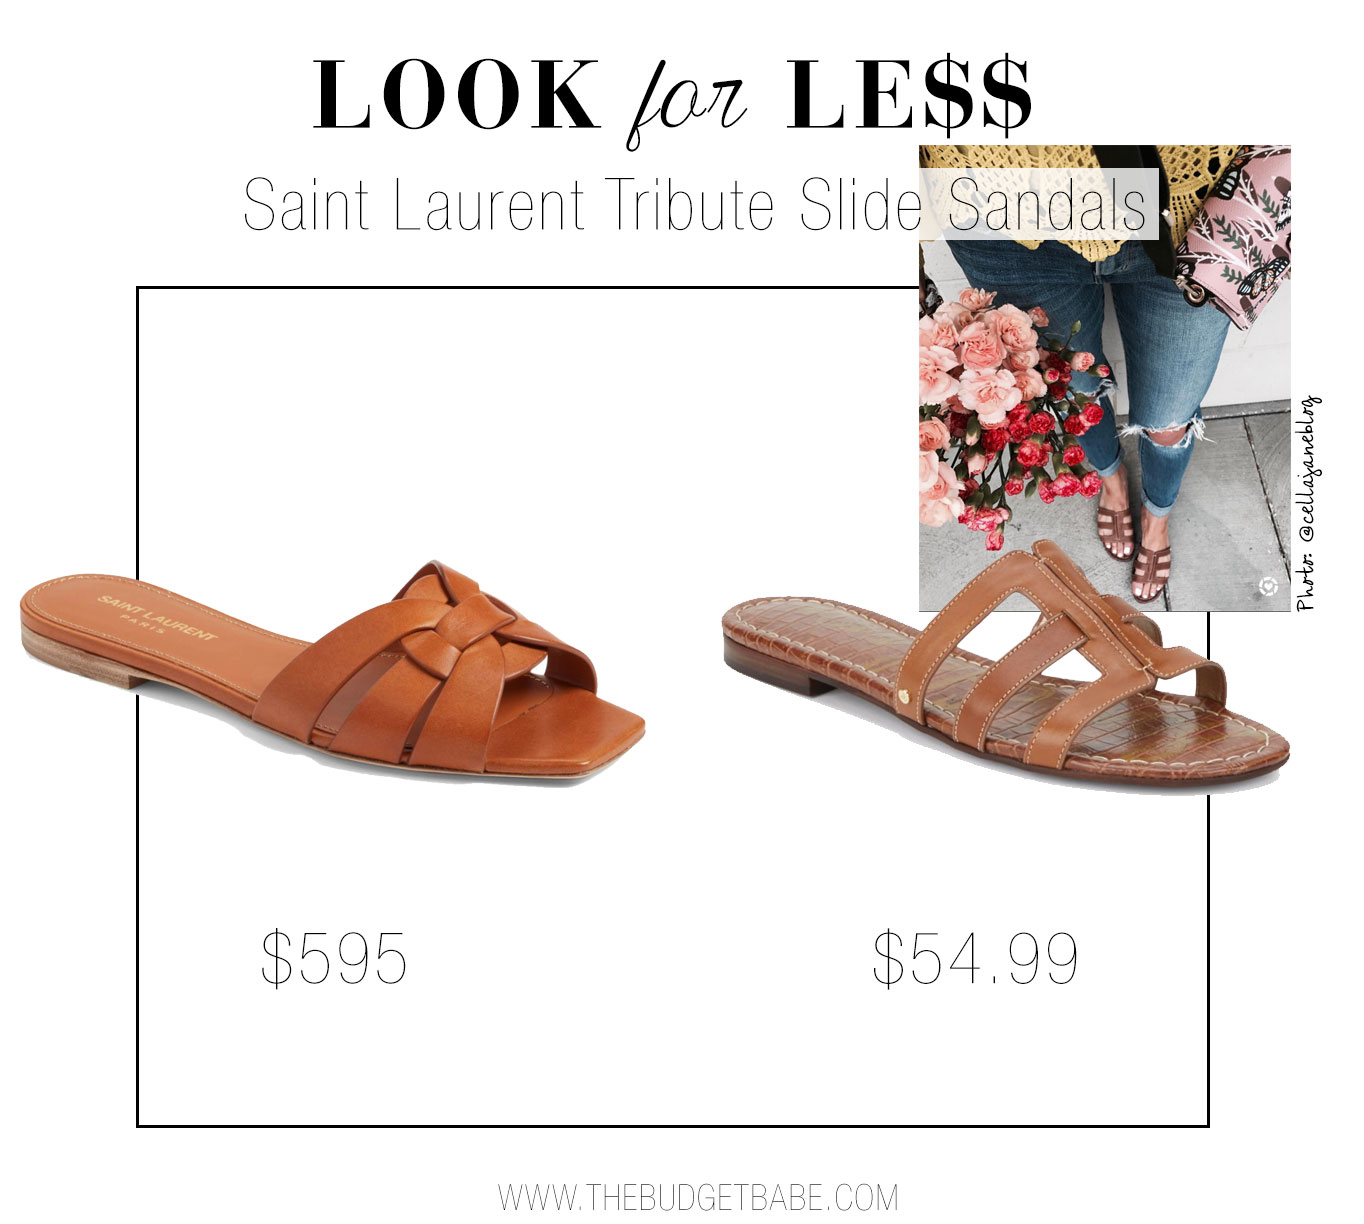 Saint Laurent Tribute Sandal versus Sam Edelman Berit Slide